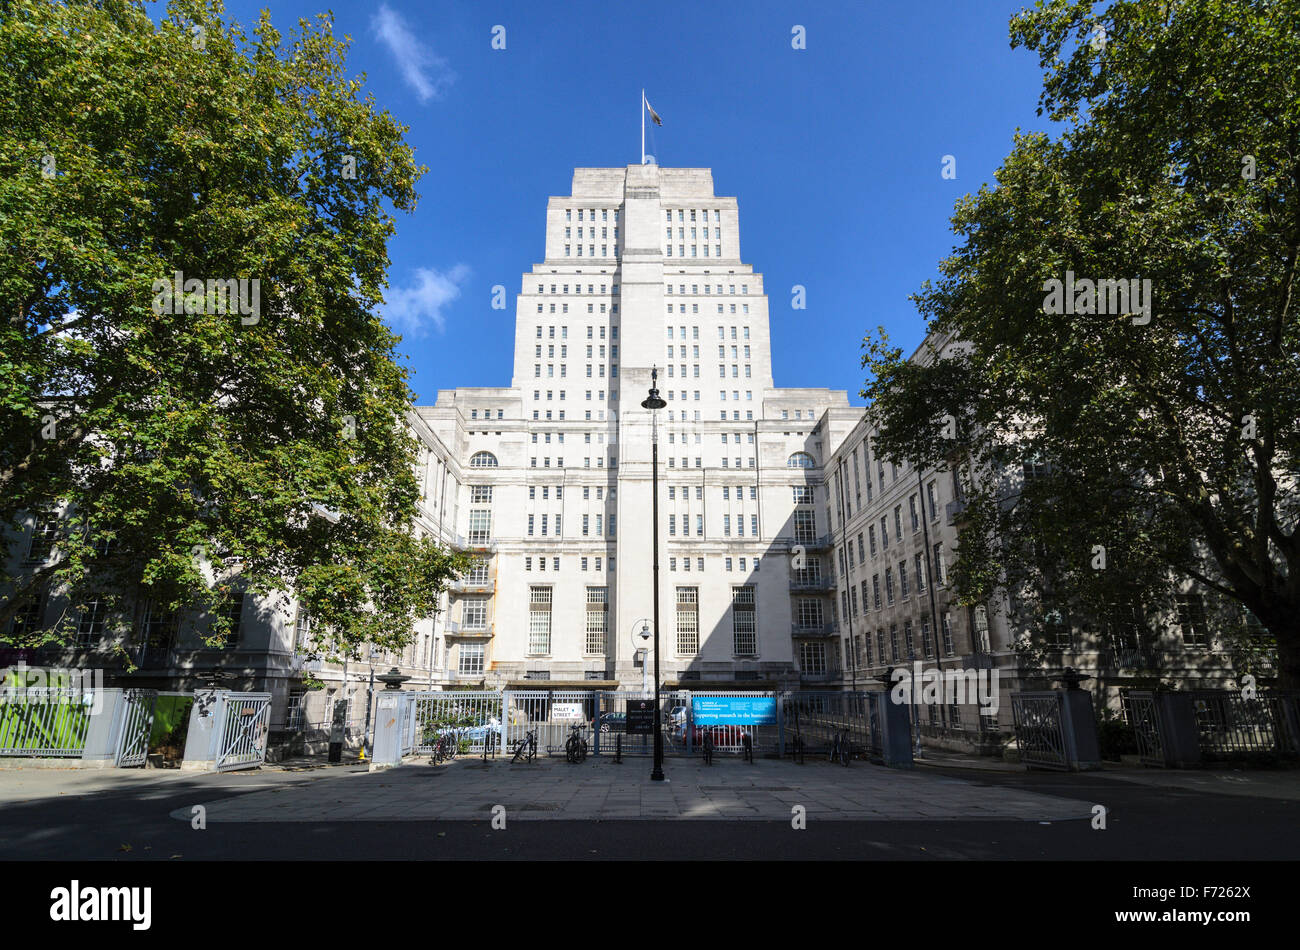 Senate House is the central building for the University of London, Bloomsbury, London, England, United Kingdom. Stock Photo